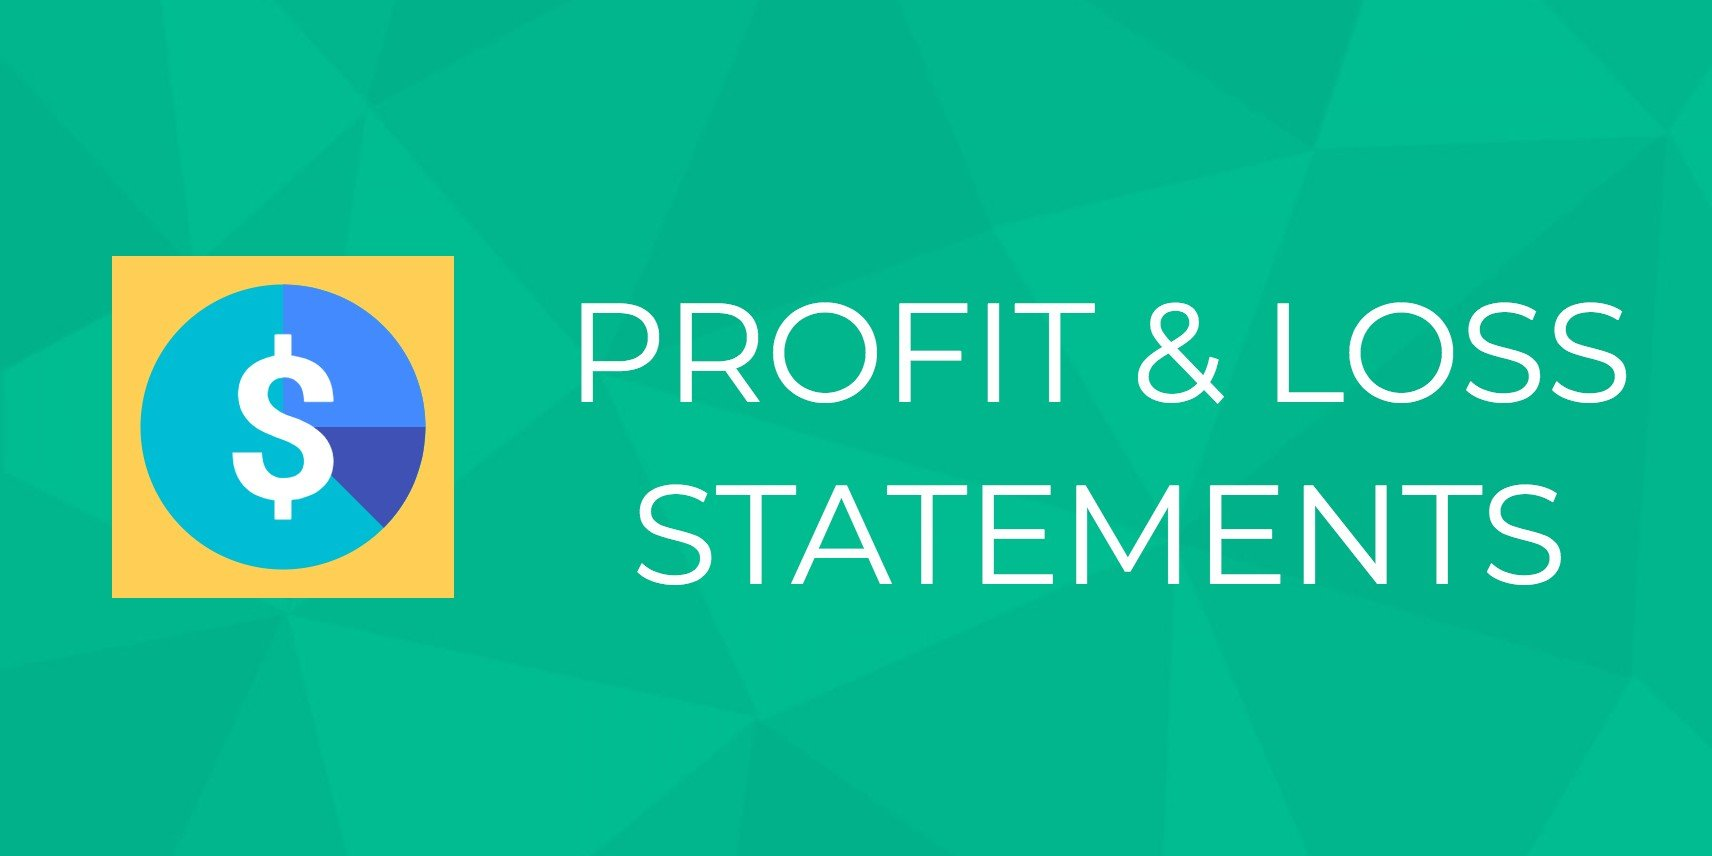 How To Prepare A Profit Loss Statement It S Easy With Our Free Template Digital Com